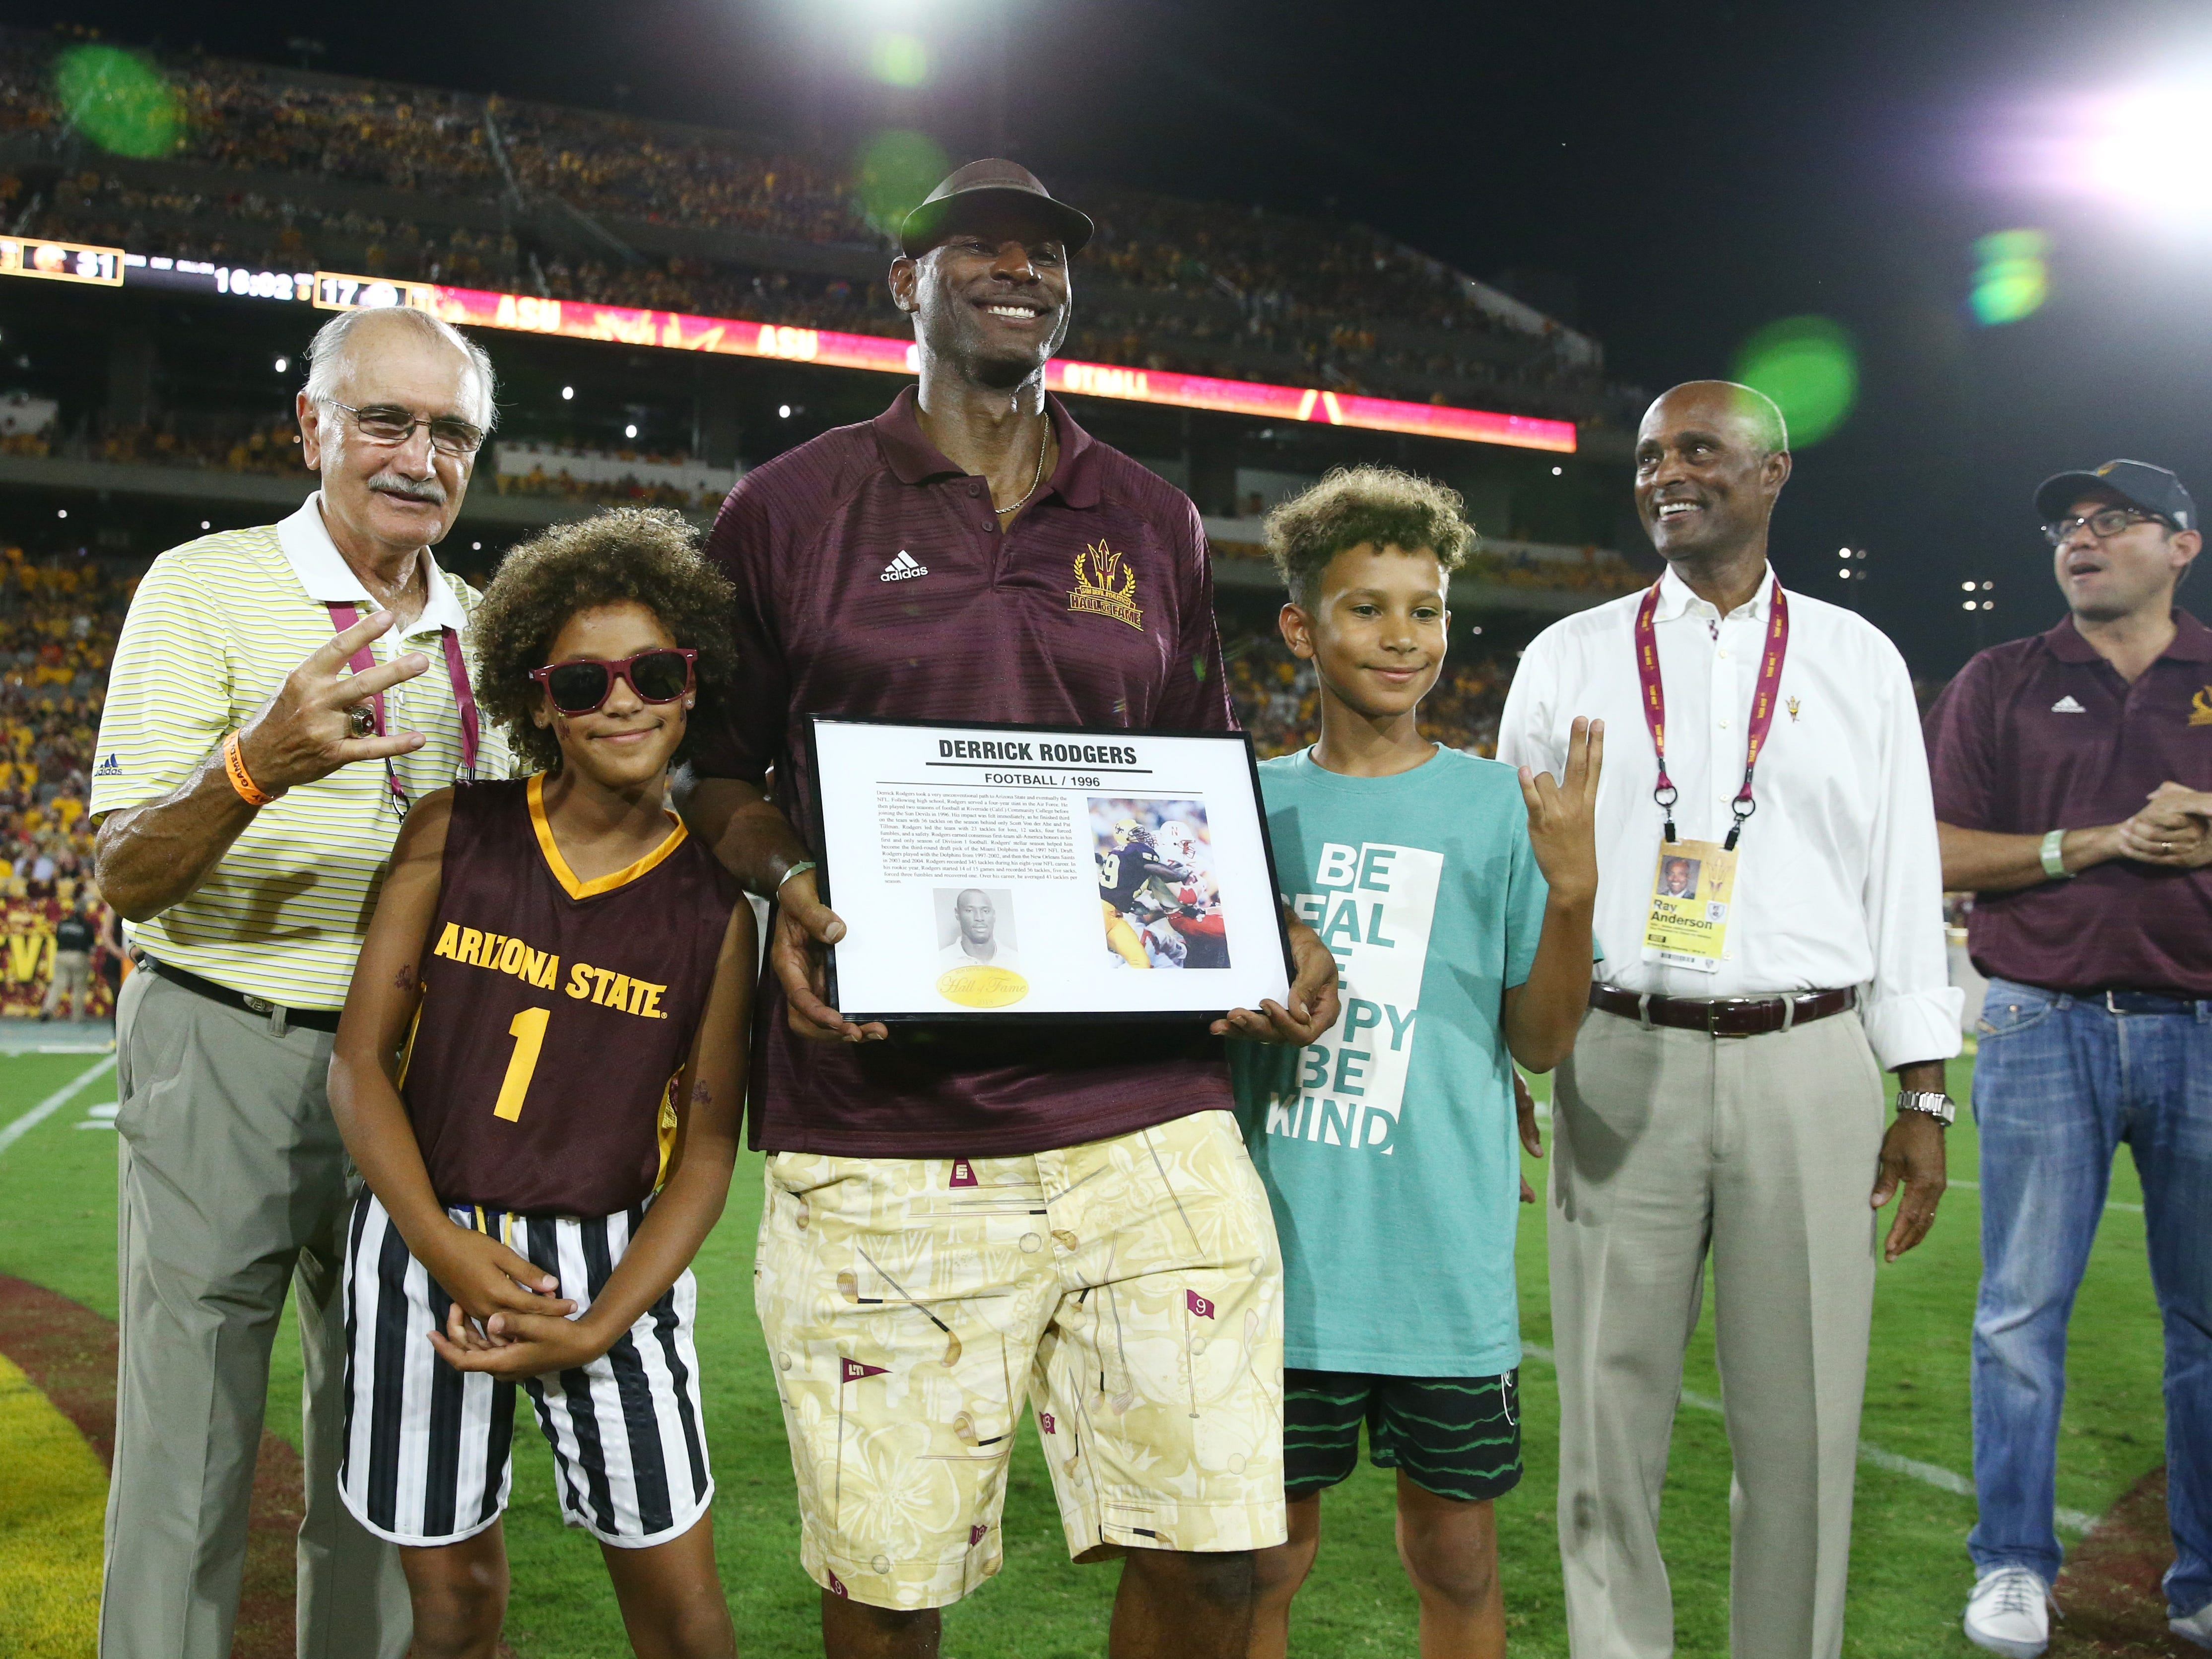 Arizona State football star Derrick Rodgers is welcomed into the ASU Athletics Hall of Frame on Sep. 29, 2018, at Sun Devil Stadium.